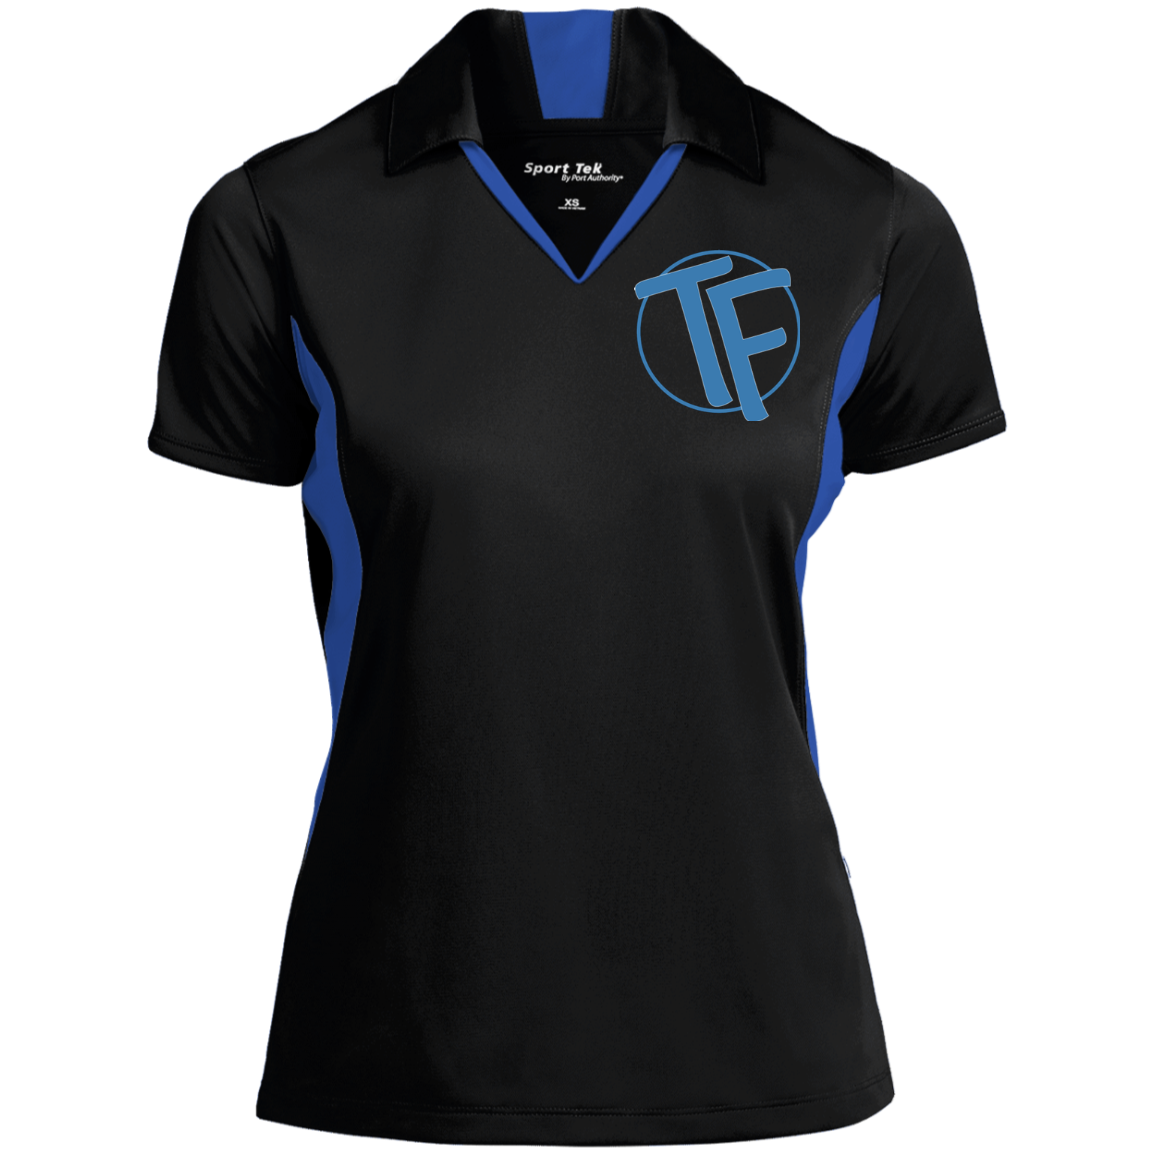 TYFE Women's Black/Blue Colorblock Performance Polo